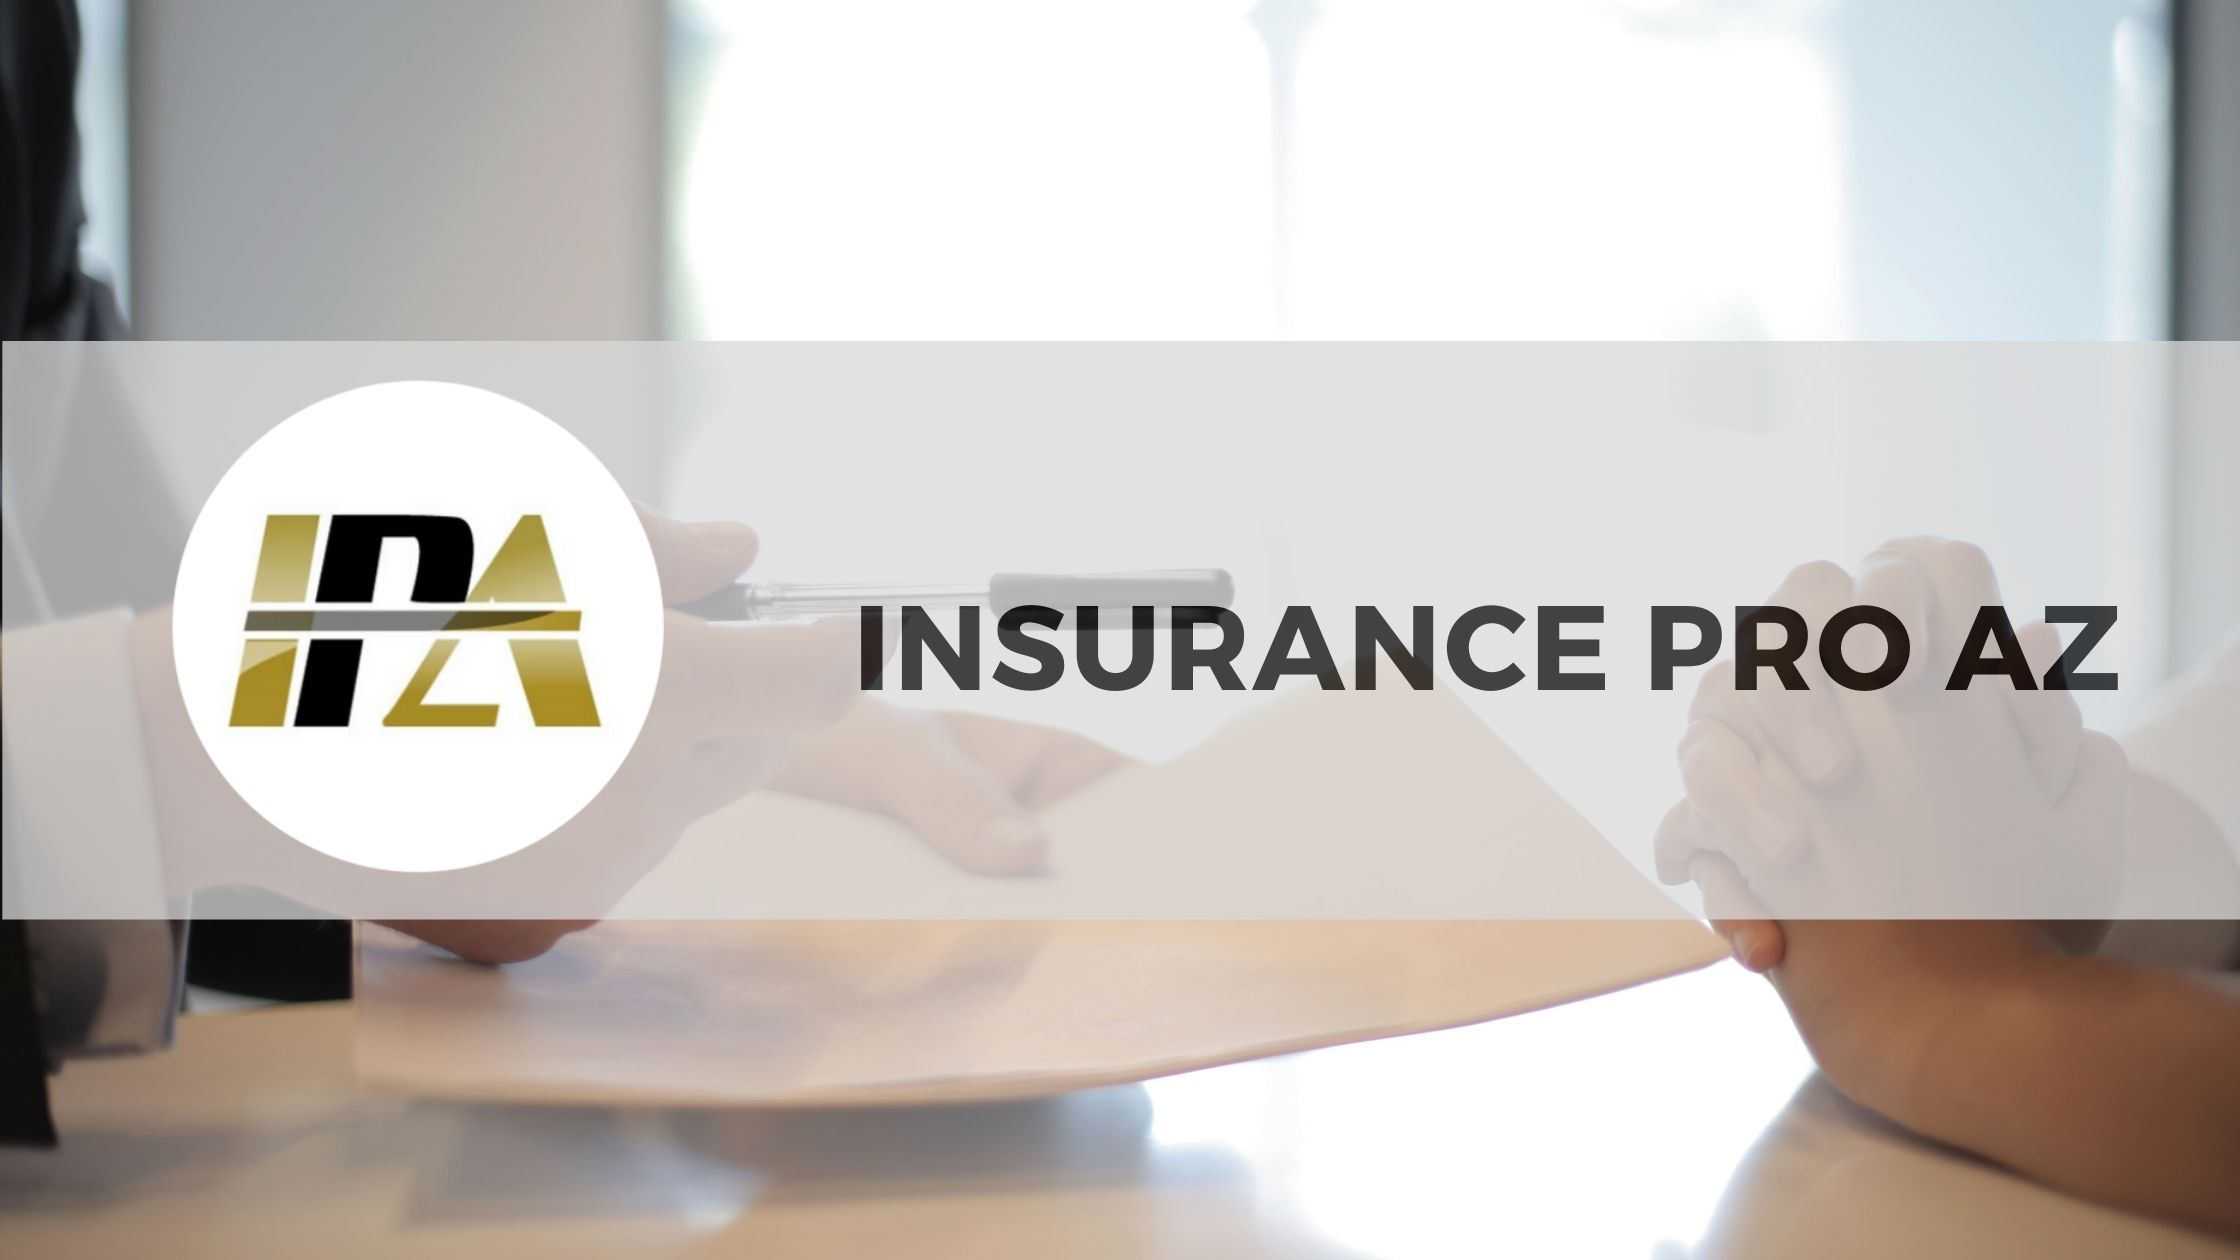 Business Insurance in Arizona